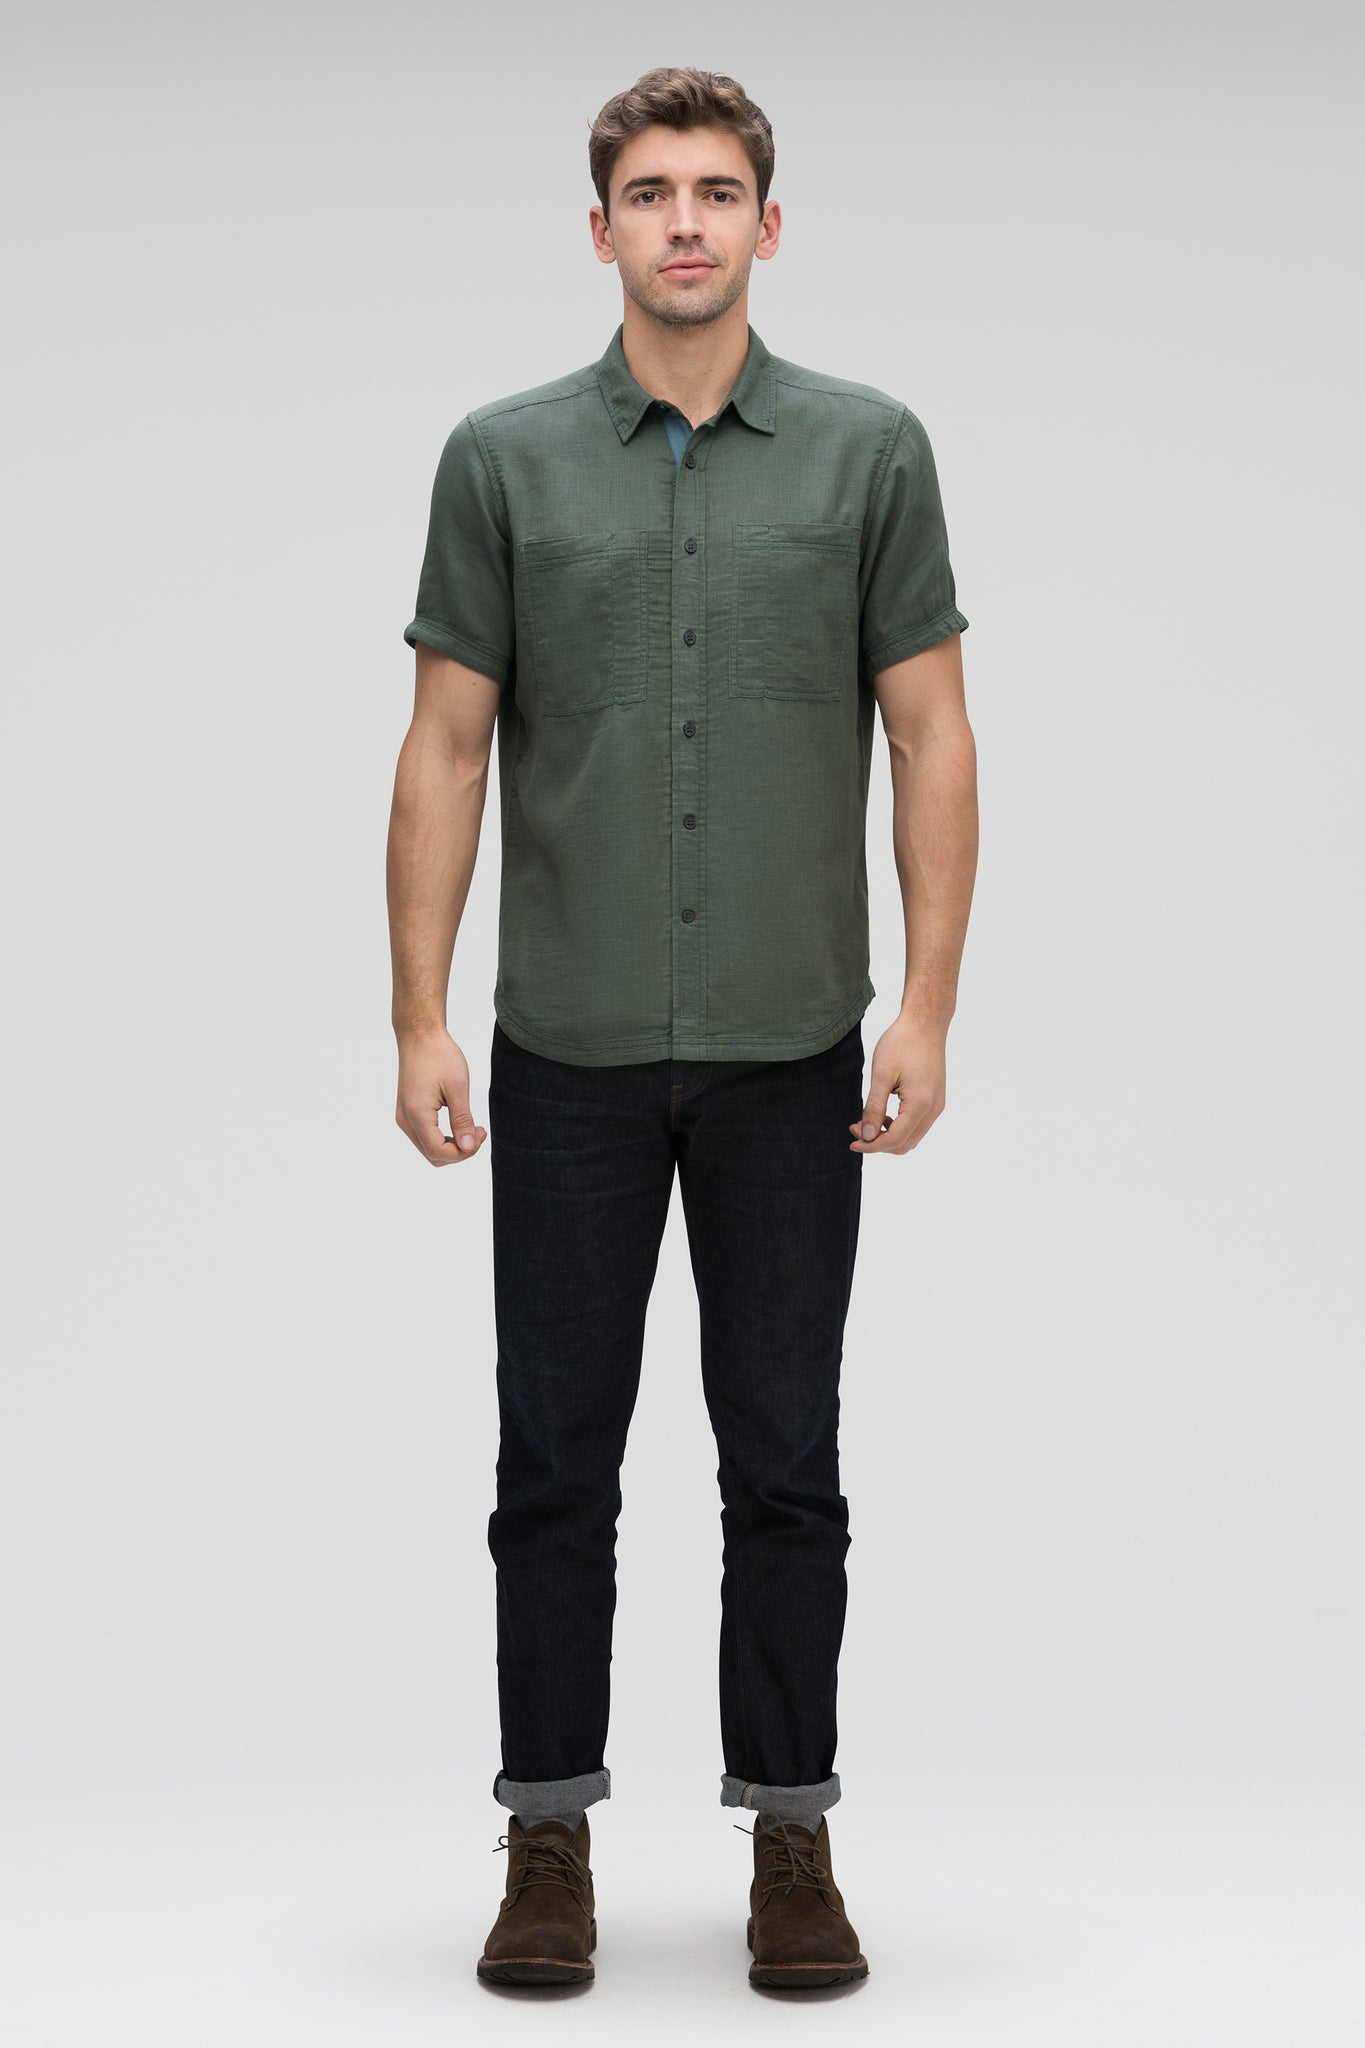 Aere Short Sleeve Button Up Shirt